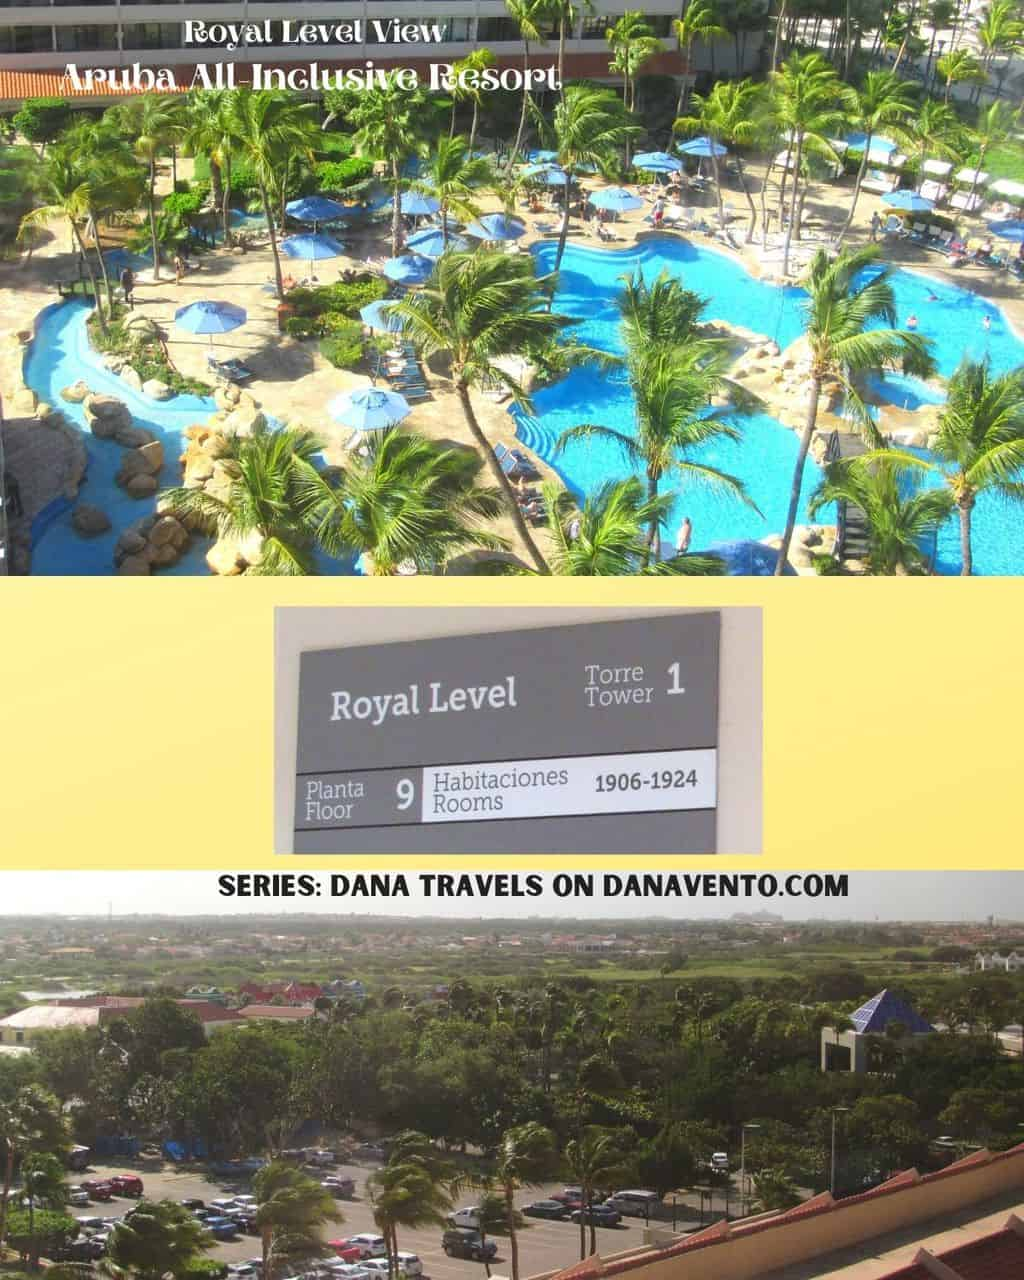 5 star boutique hotel Royal Level Aruba views from within